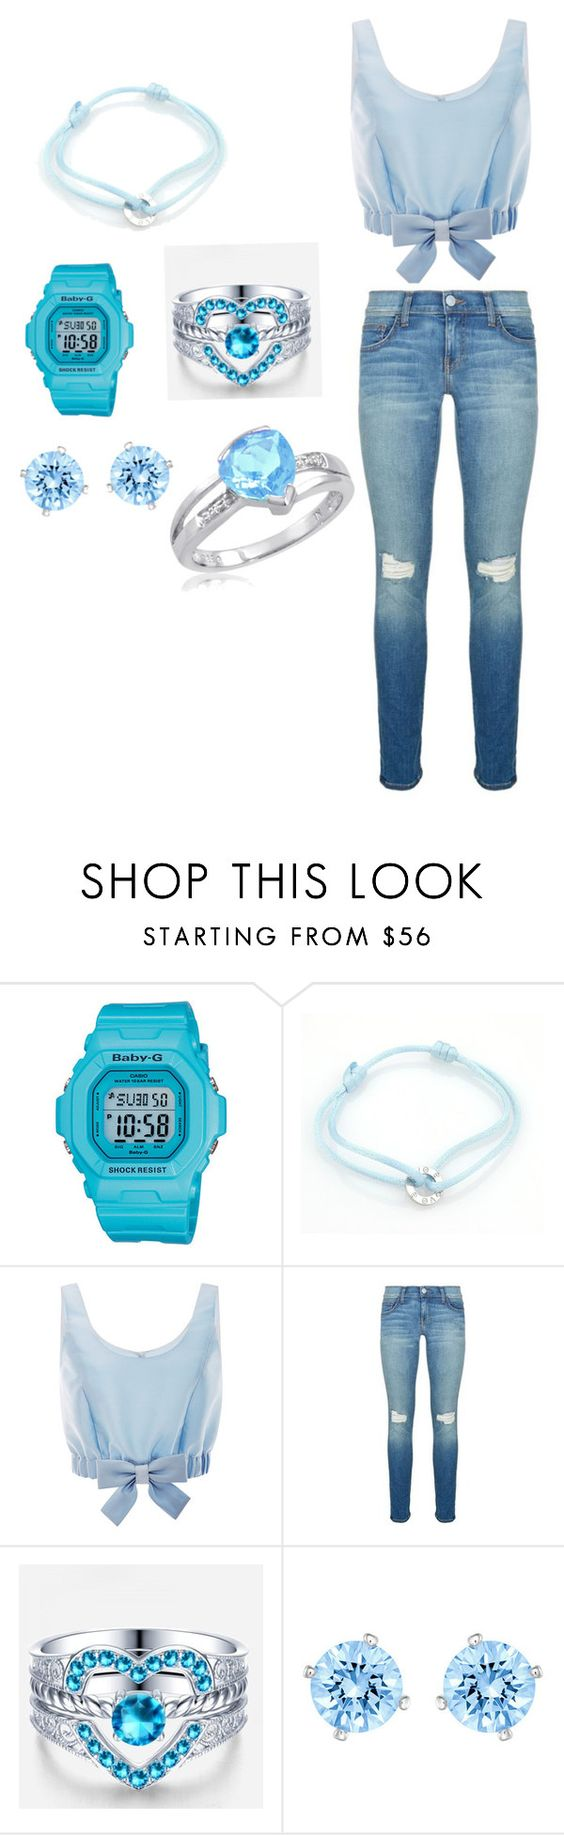 """Baby blue"" by steverusk ❤ liked on Polyvore featuring Casio, Cartier, Honor, Rebecca Minkoff and Swarovski"